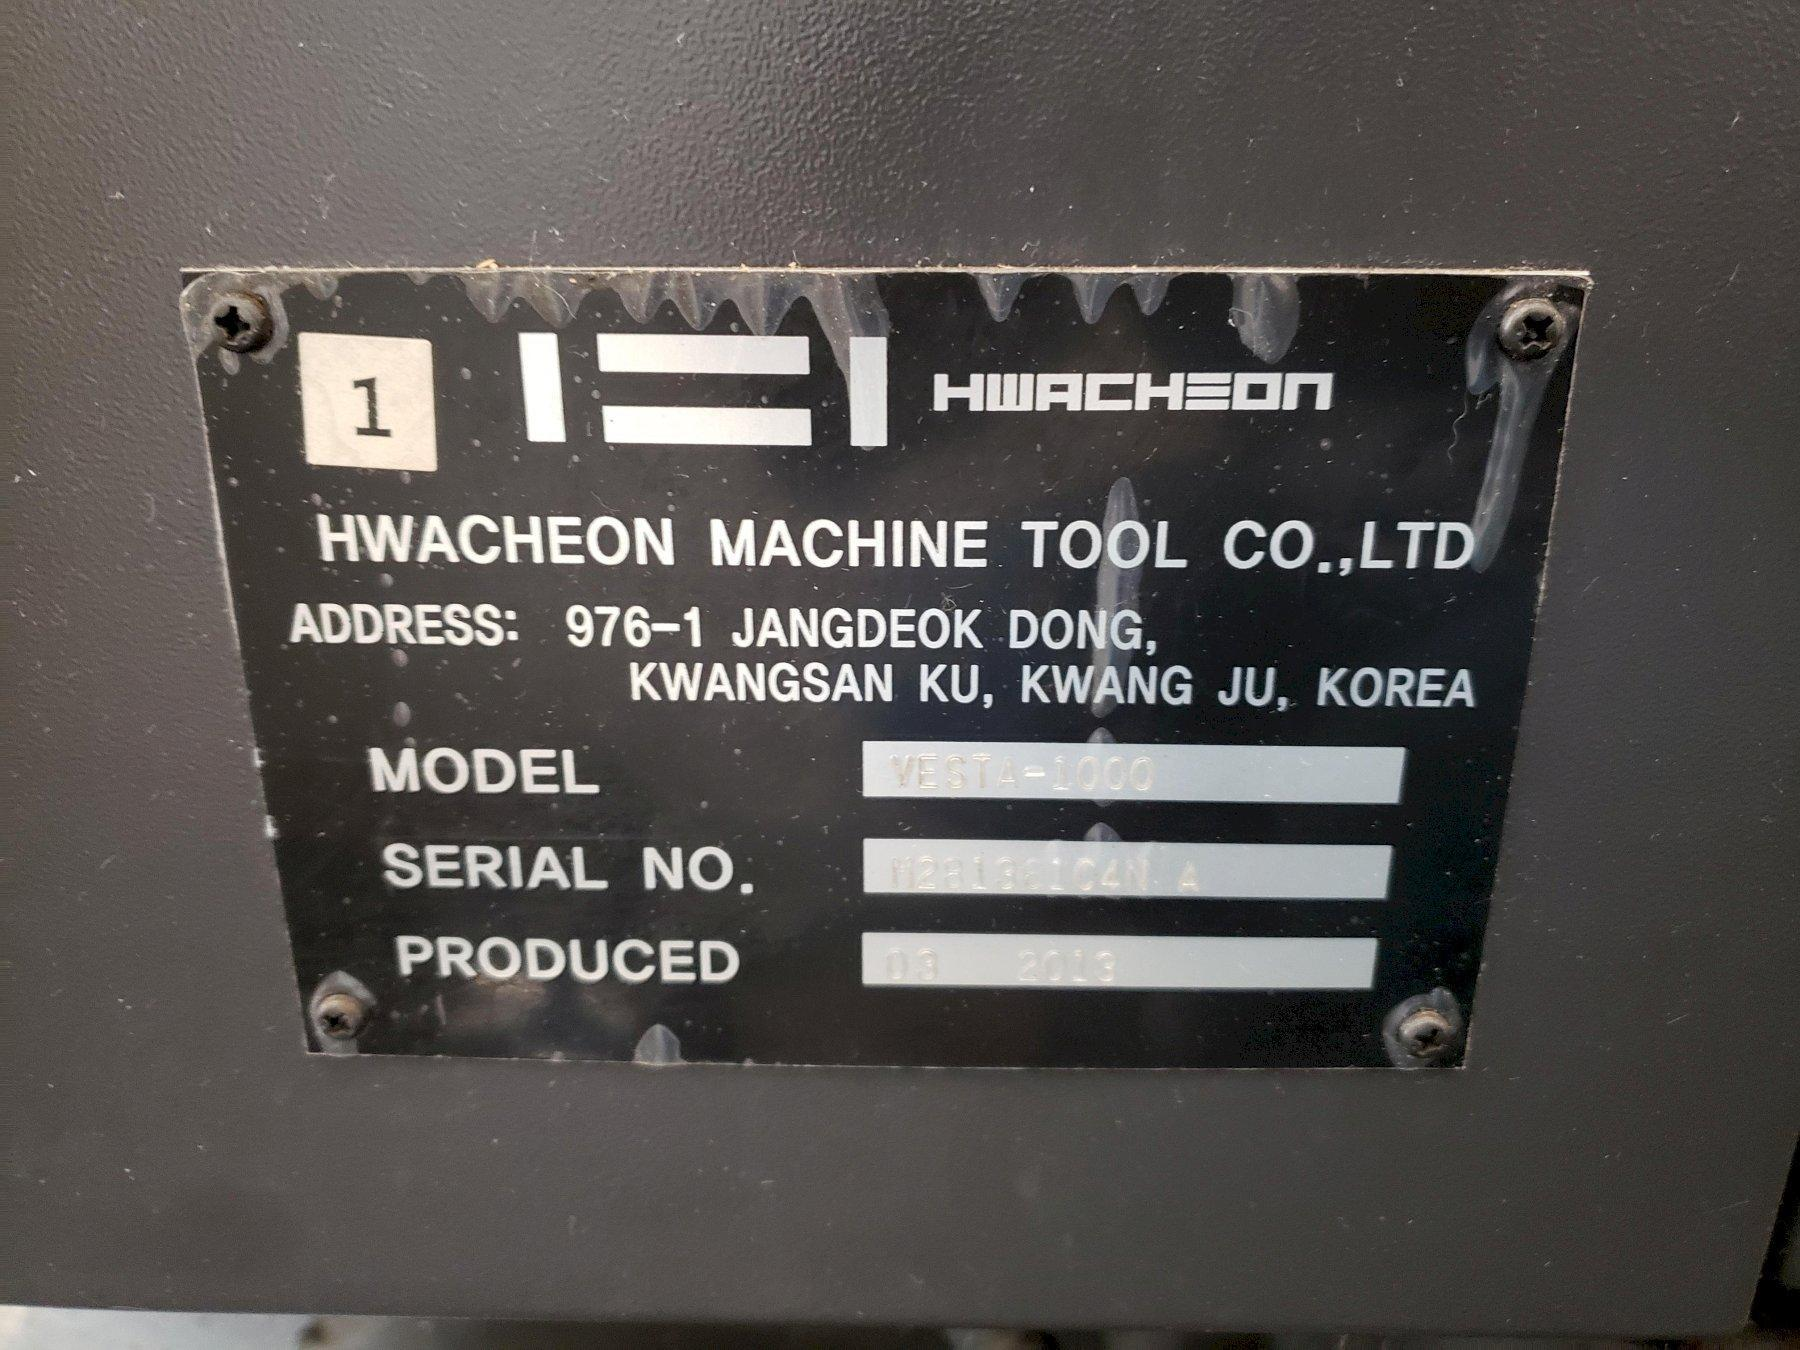 Hwacheon Vesta 1000 CNC Vertical Mill 2013, Fanuc Oi-MF CNC Control, Thru Spindle Coolant, Rigid Tapping, Chip Conveyor, and Spindle Chiller.